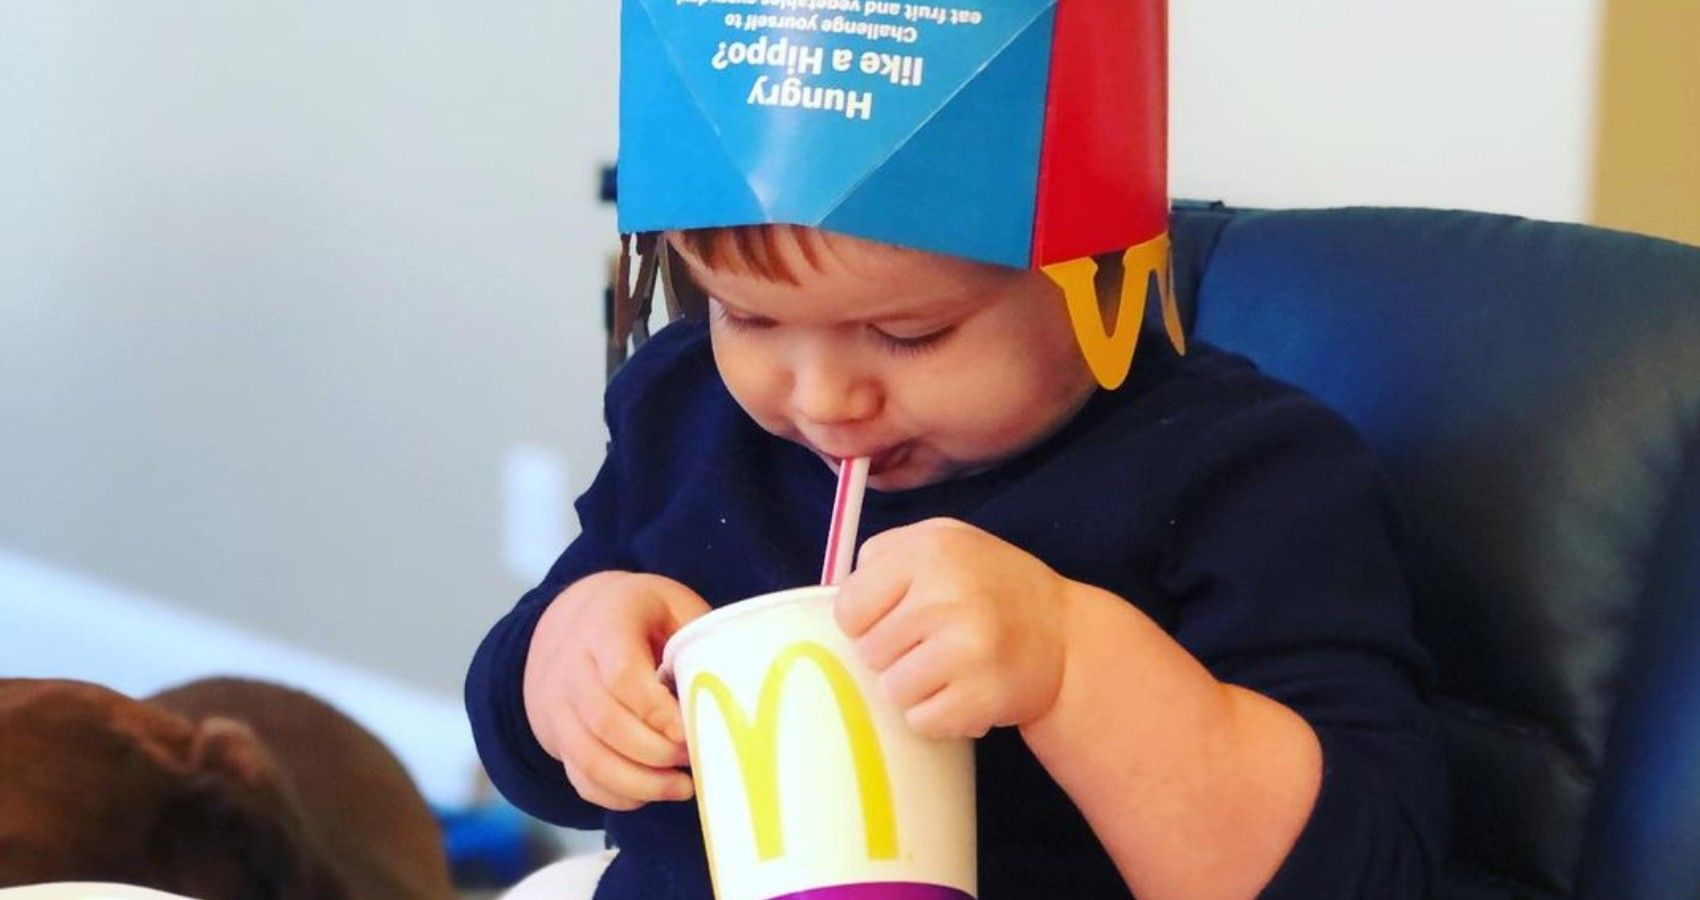 Kids' Weight Not Affected By Nearby Fast Food Restaurants